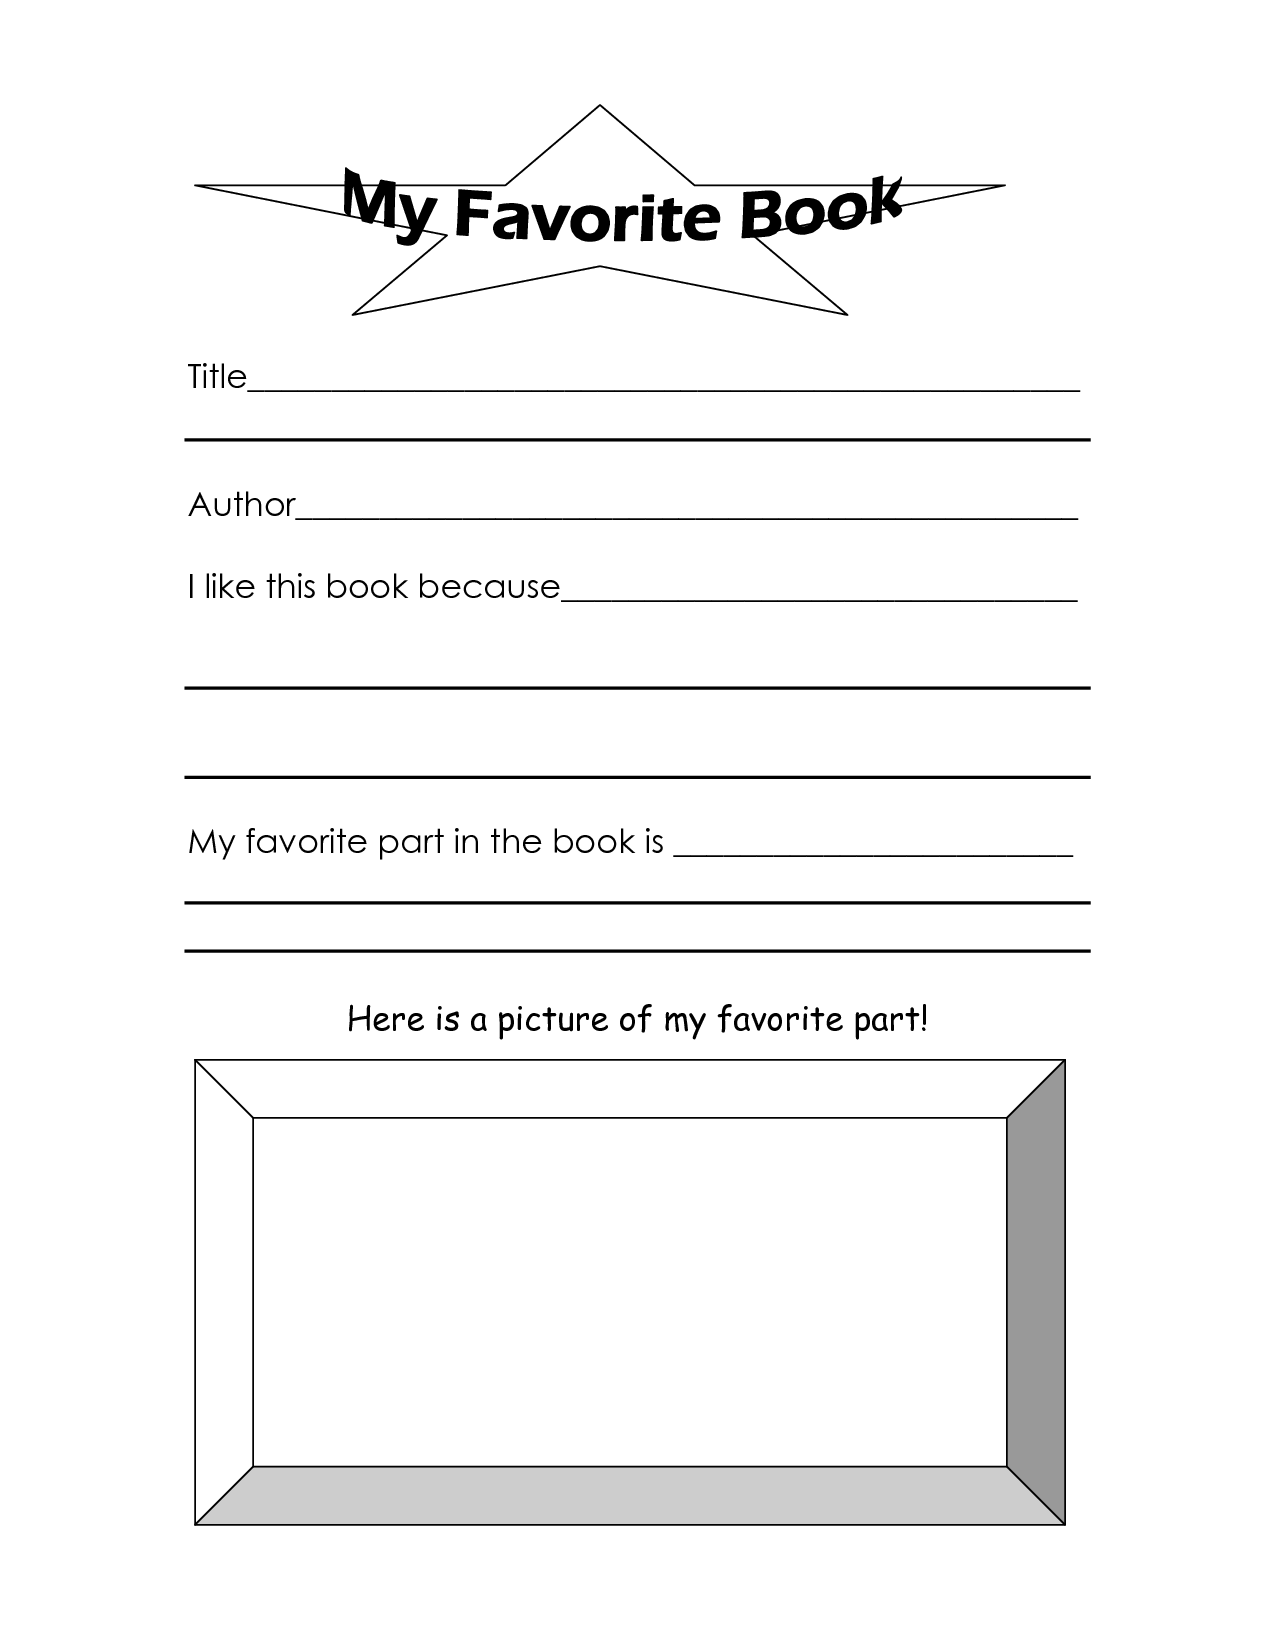 17 Best Images Of My Favorite Memory Worksheet